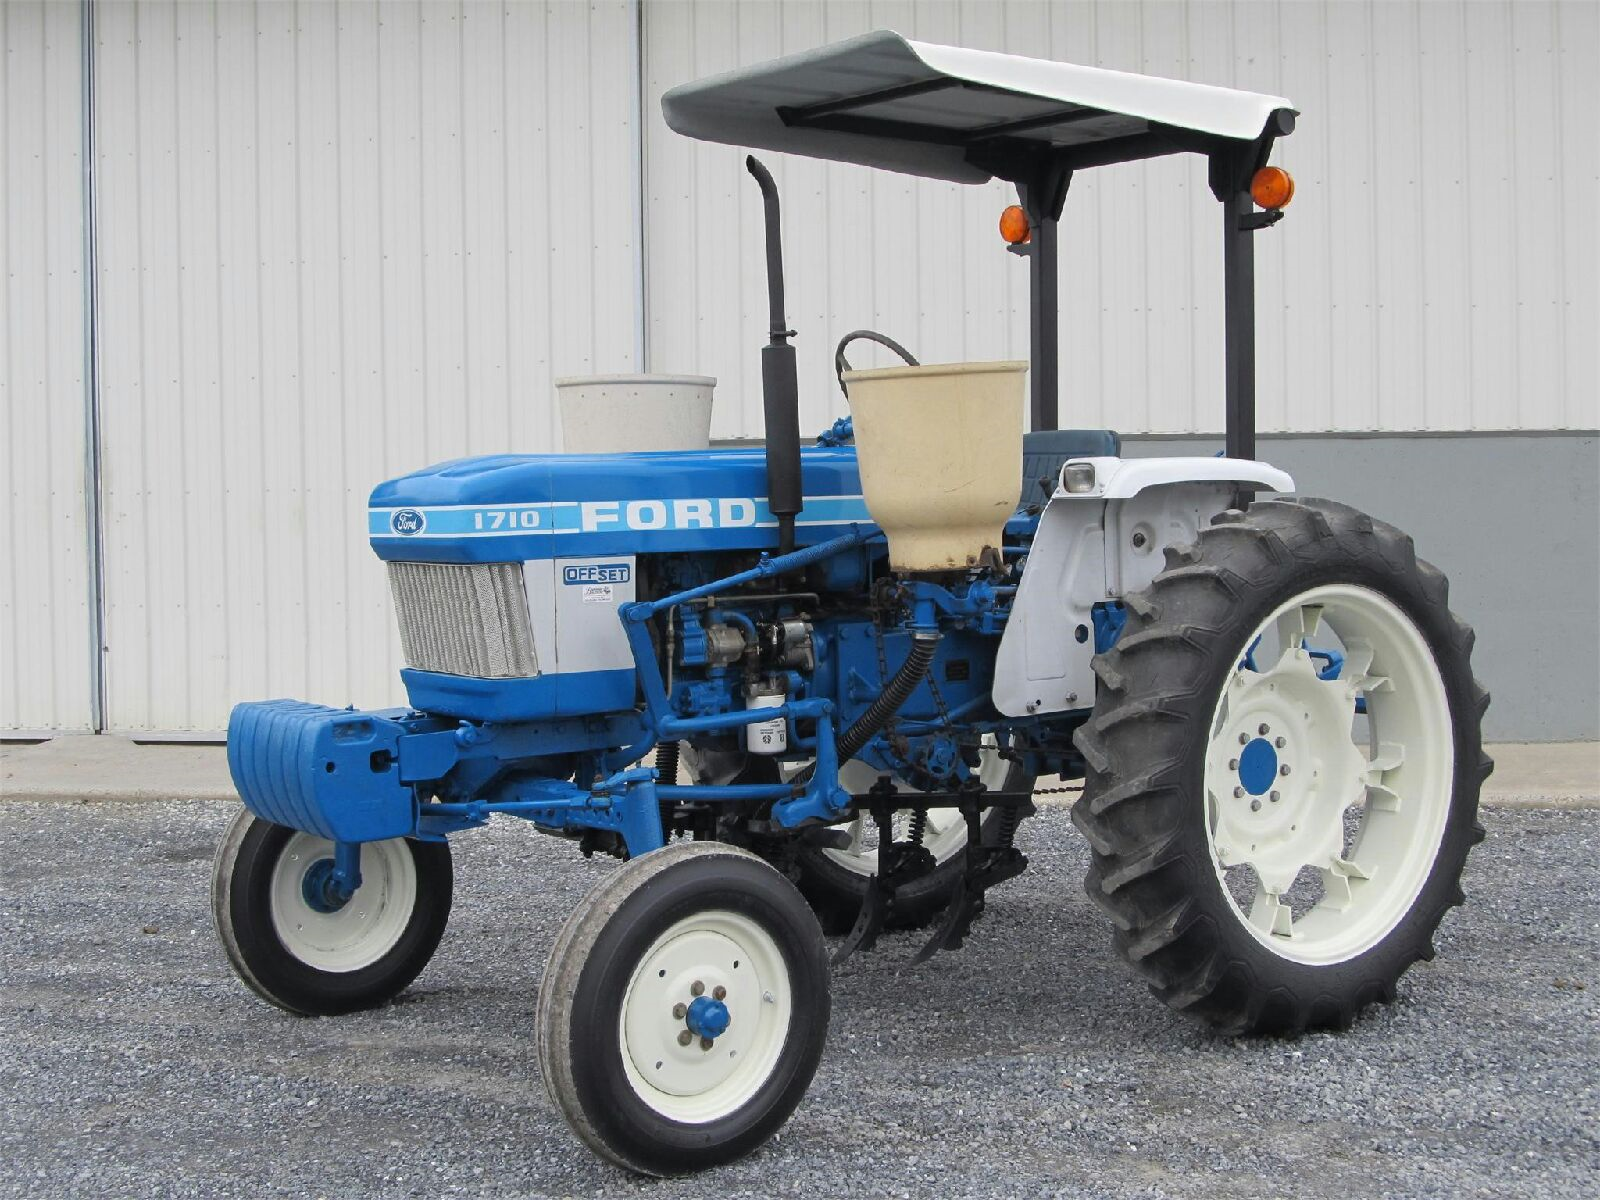 The modernized, compact Ford 1710 Offset was built for them by